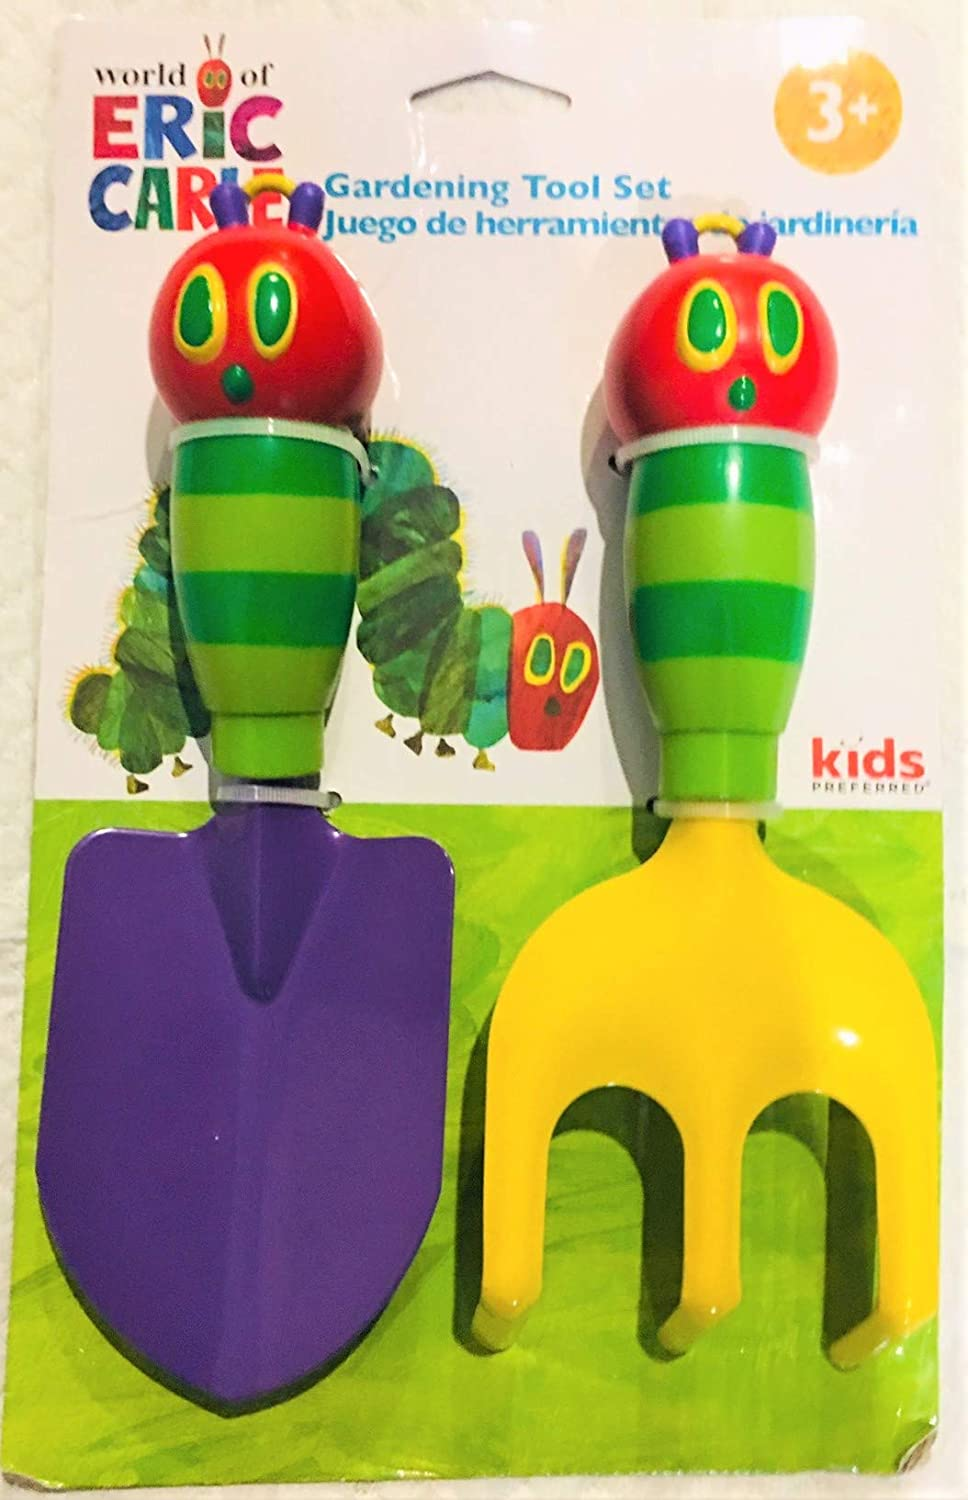 2pcs The World of Eric Carle The Hungry Caterpillar Gardening Tools